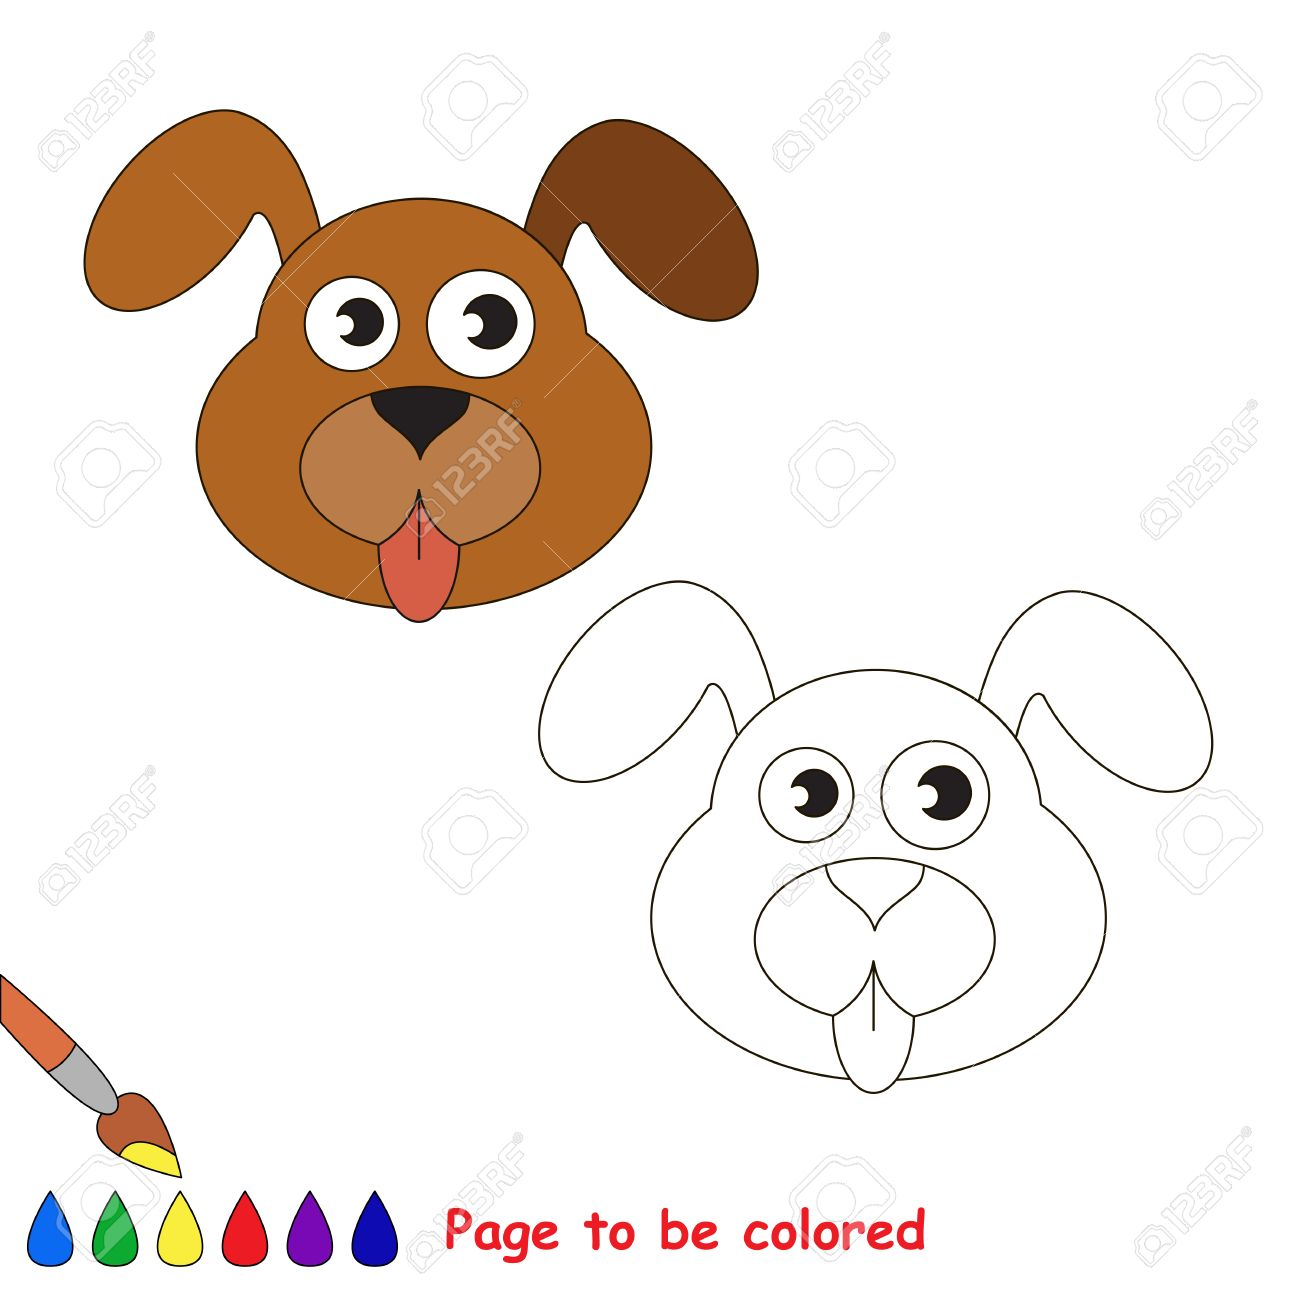 Dog Face To Be Colored The Coloring Book For Preschool Kids